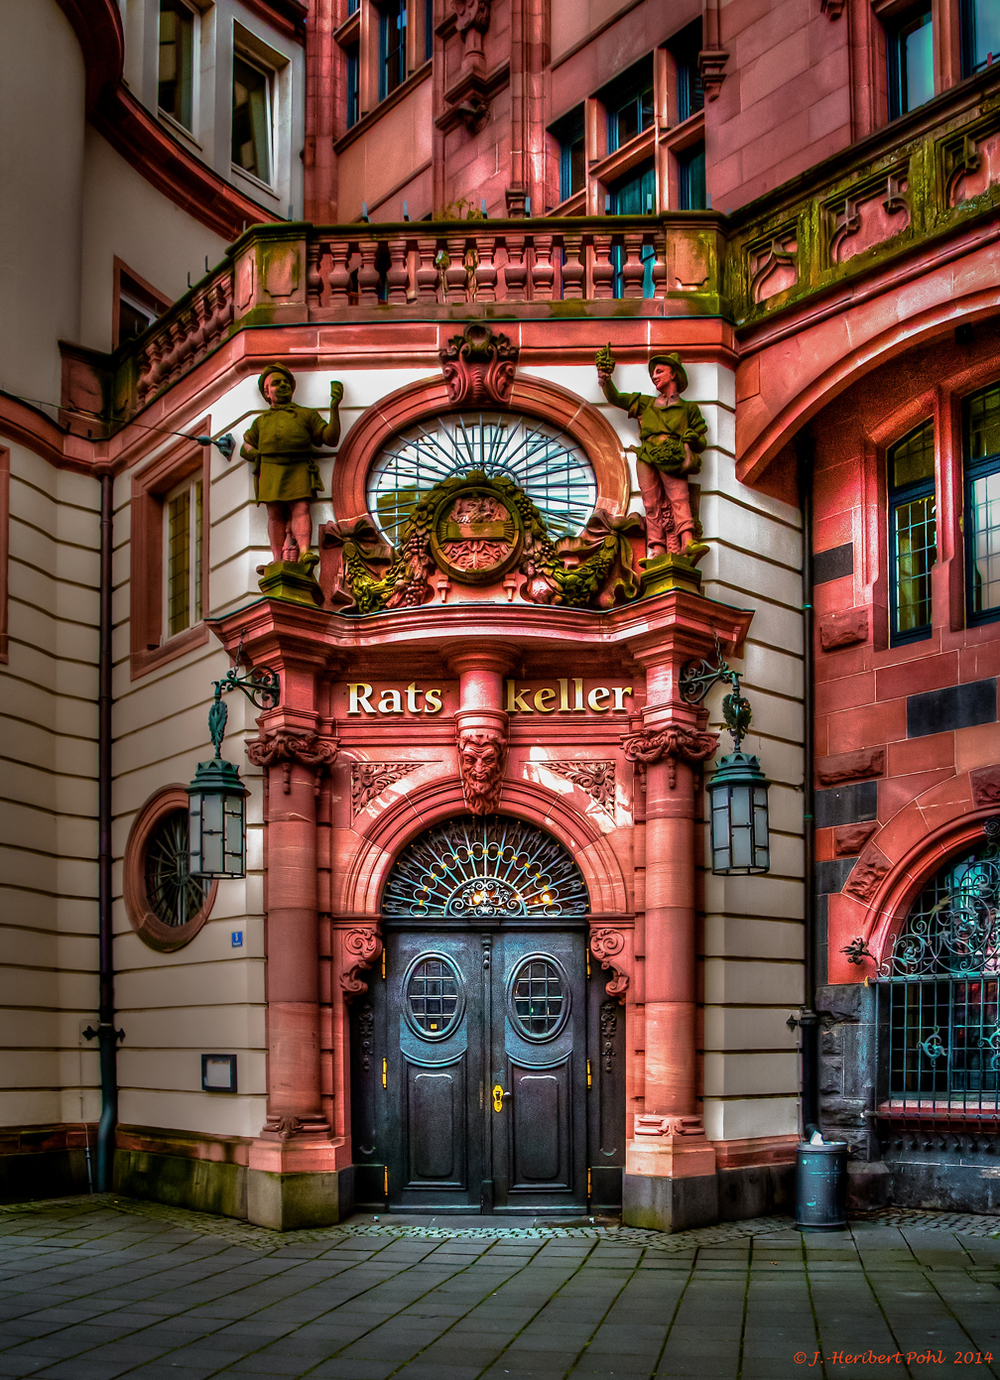 Ratskeller entrance door (photo by Heribert Pohl)